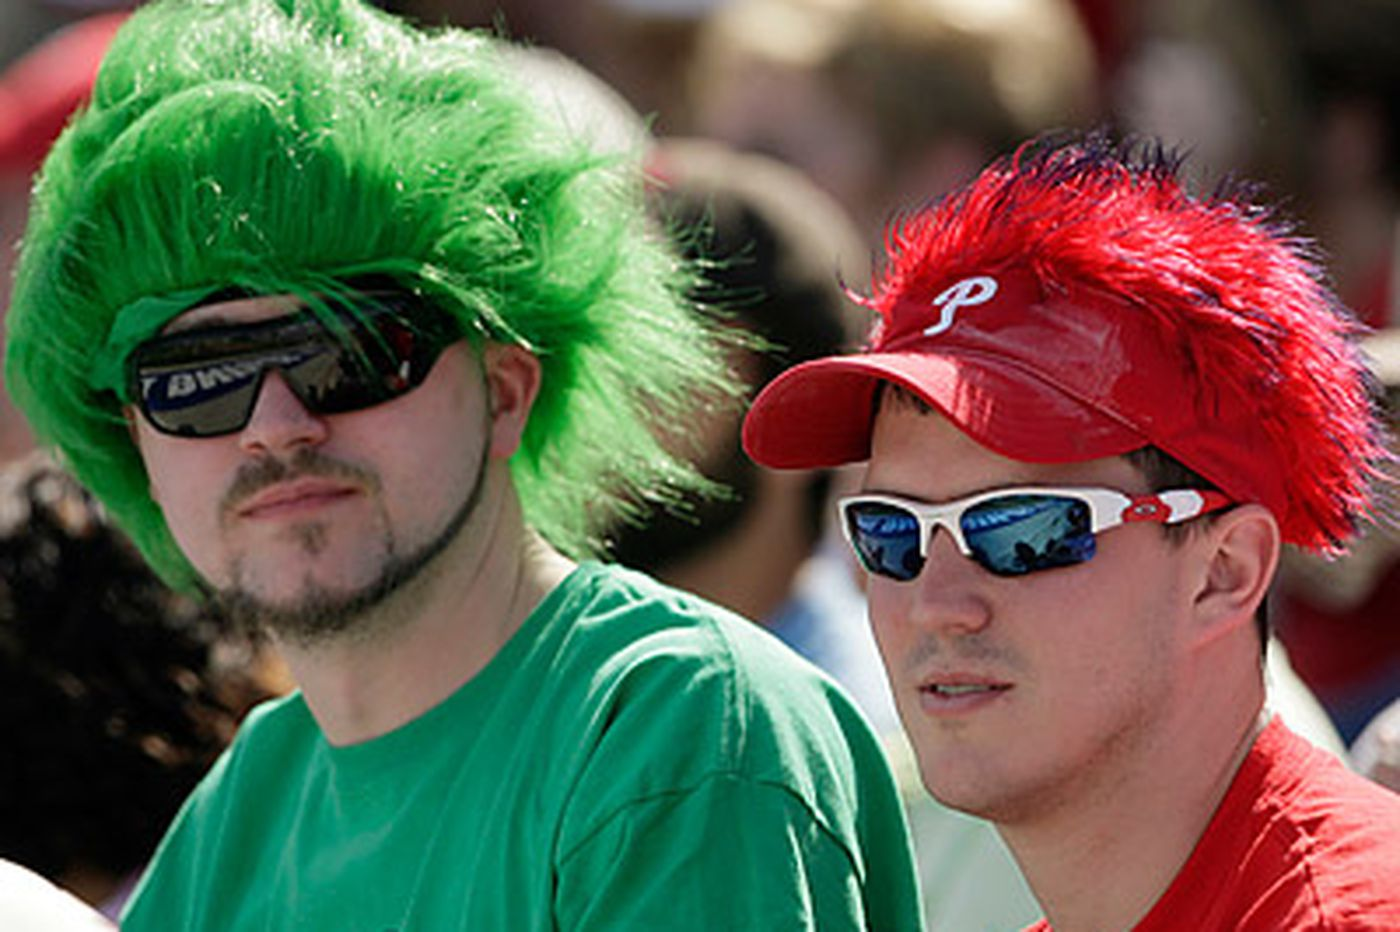 Counterpunching tired cliches about Philly sports fans